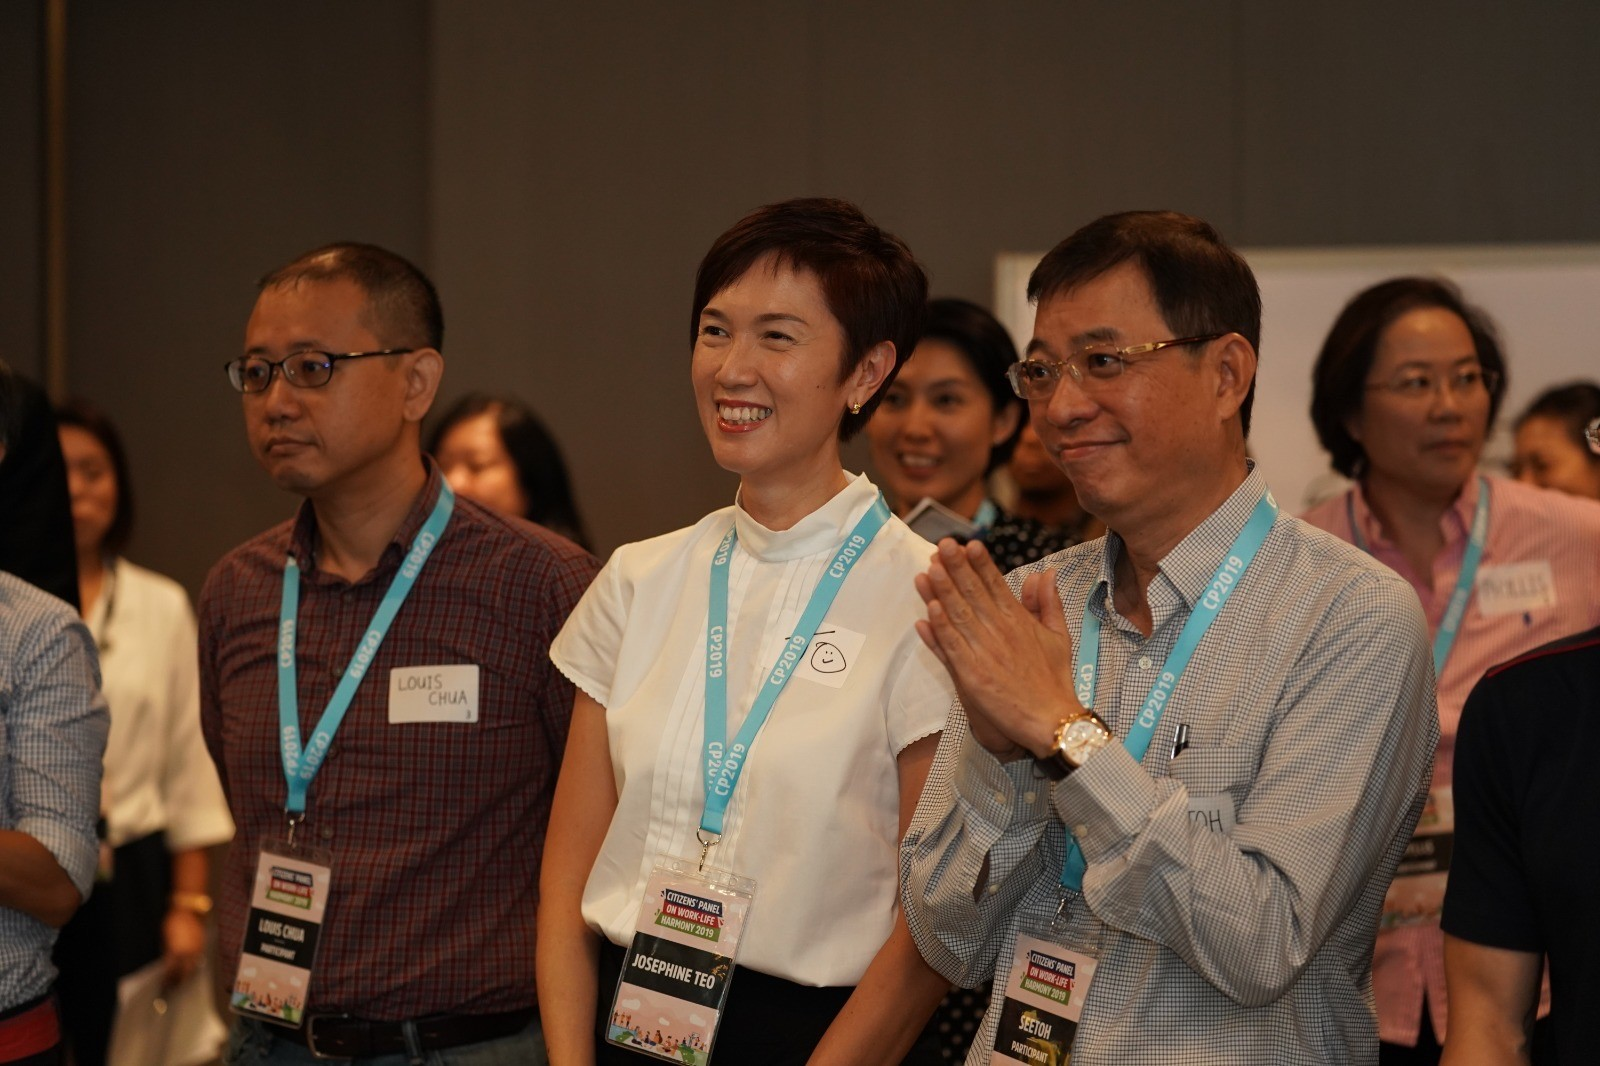 Minister Josephine Teo participating in the introductory activity together with the members of the Citizens' Panel